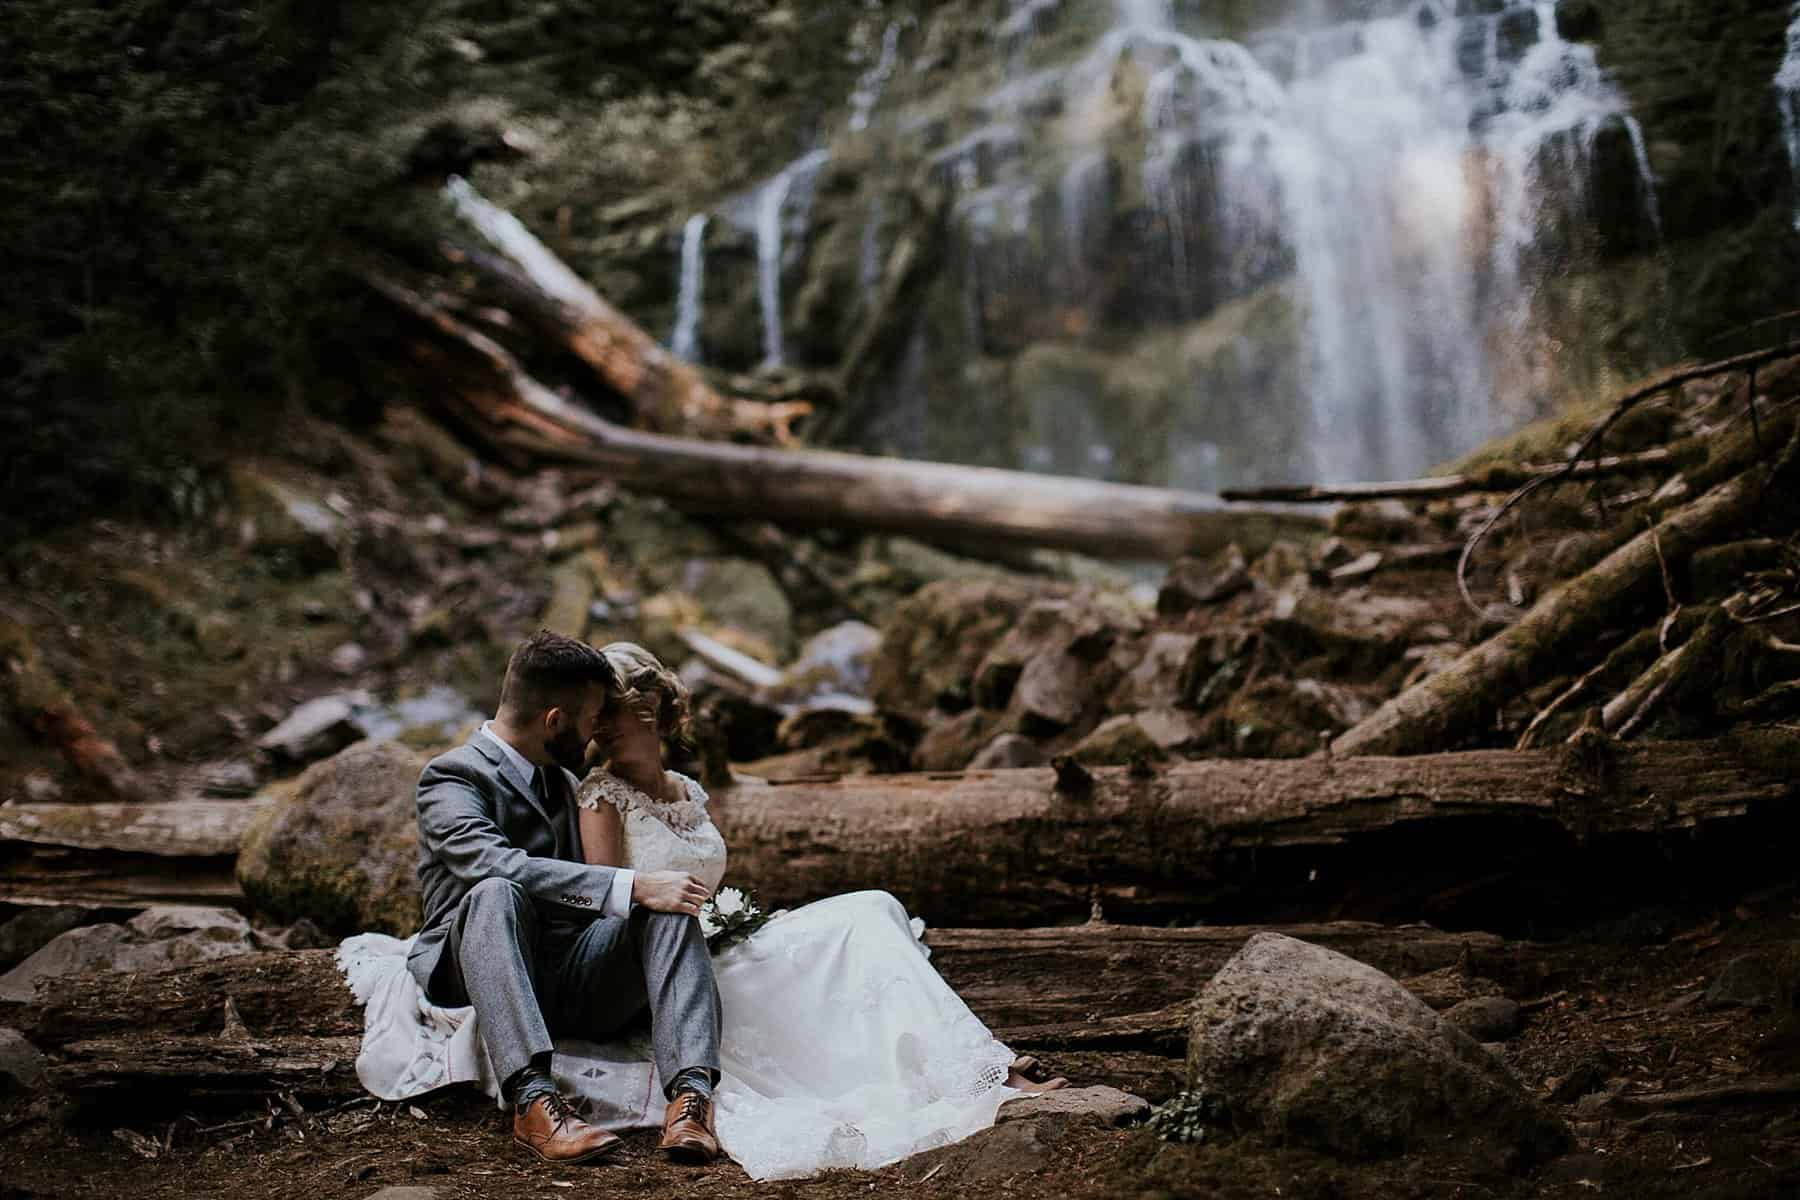 bend-central-oregon-waterfall-adventure-wedding-elopement-010